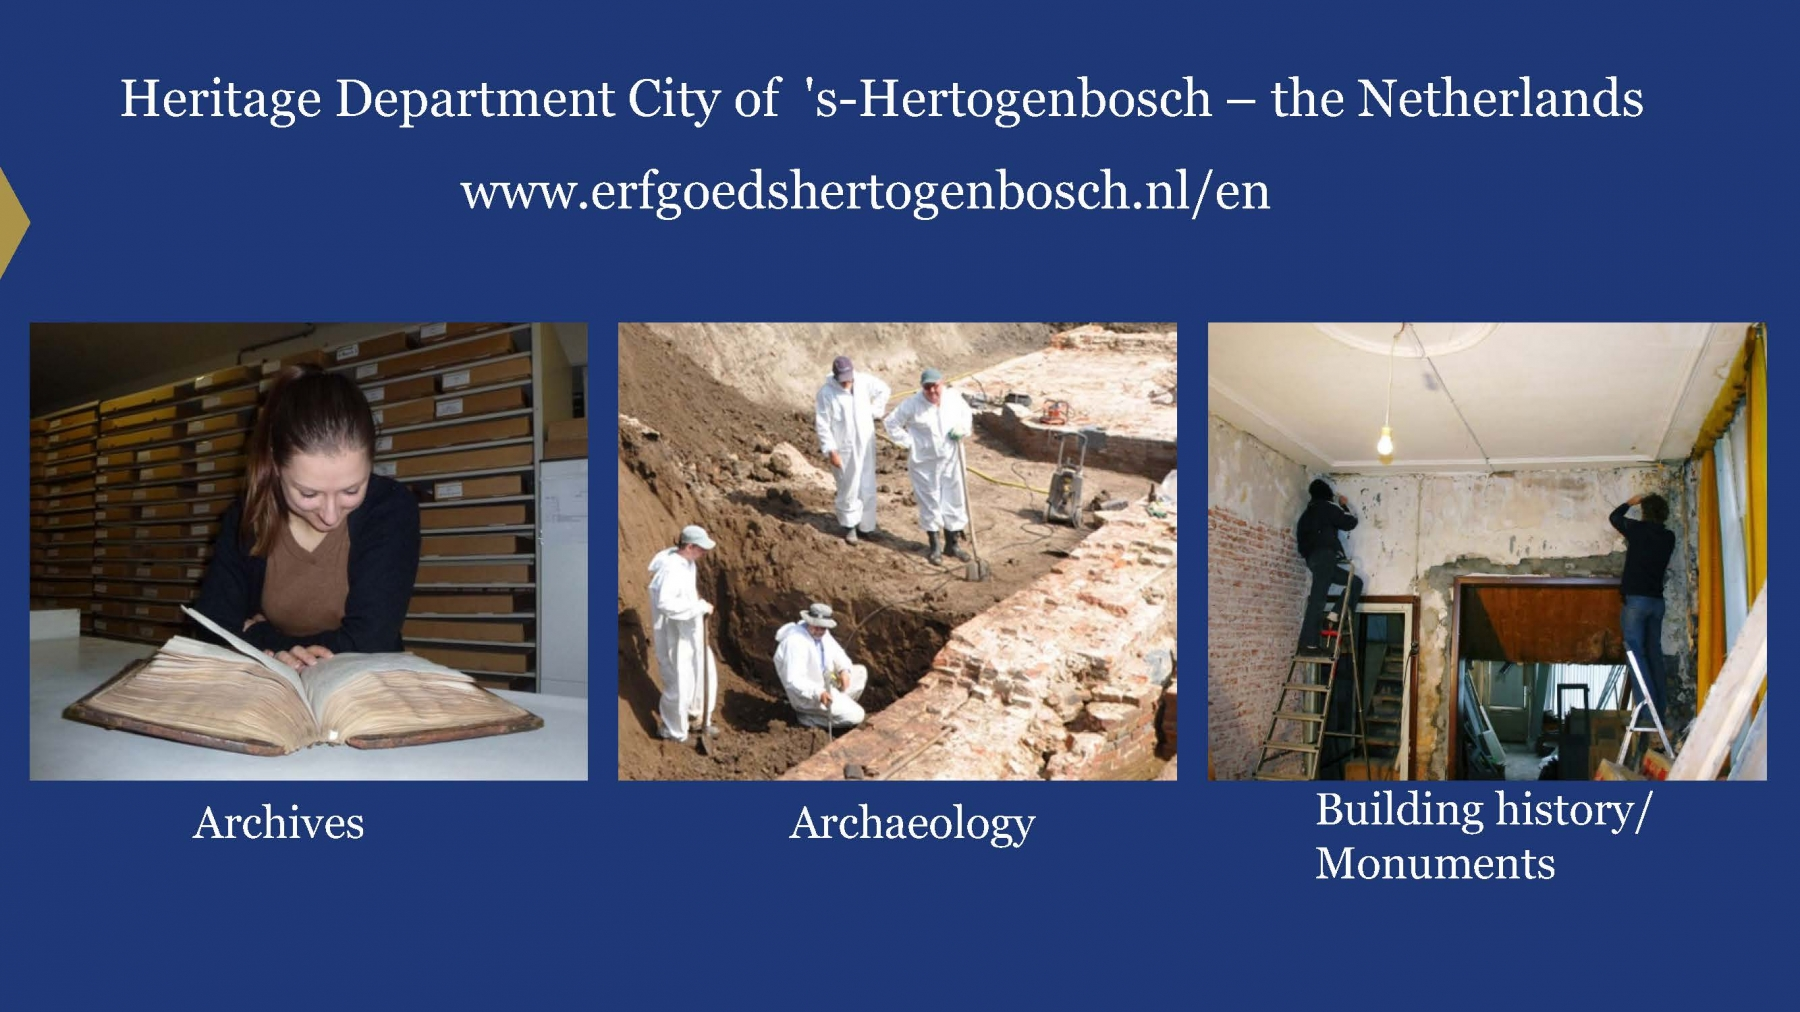 Heritage Department - City of 's-Hertogenbosch (pres. by Dieke Wesselingh)